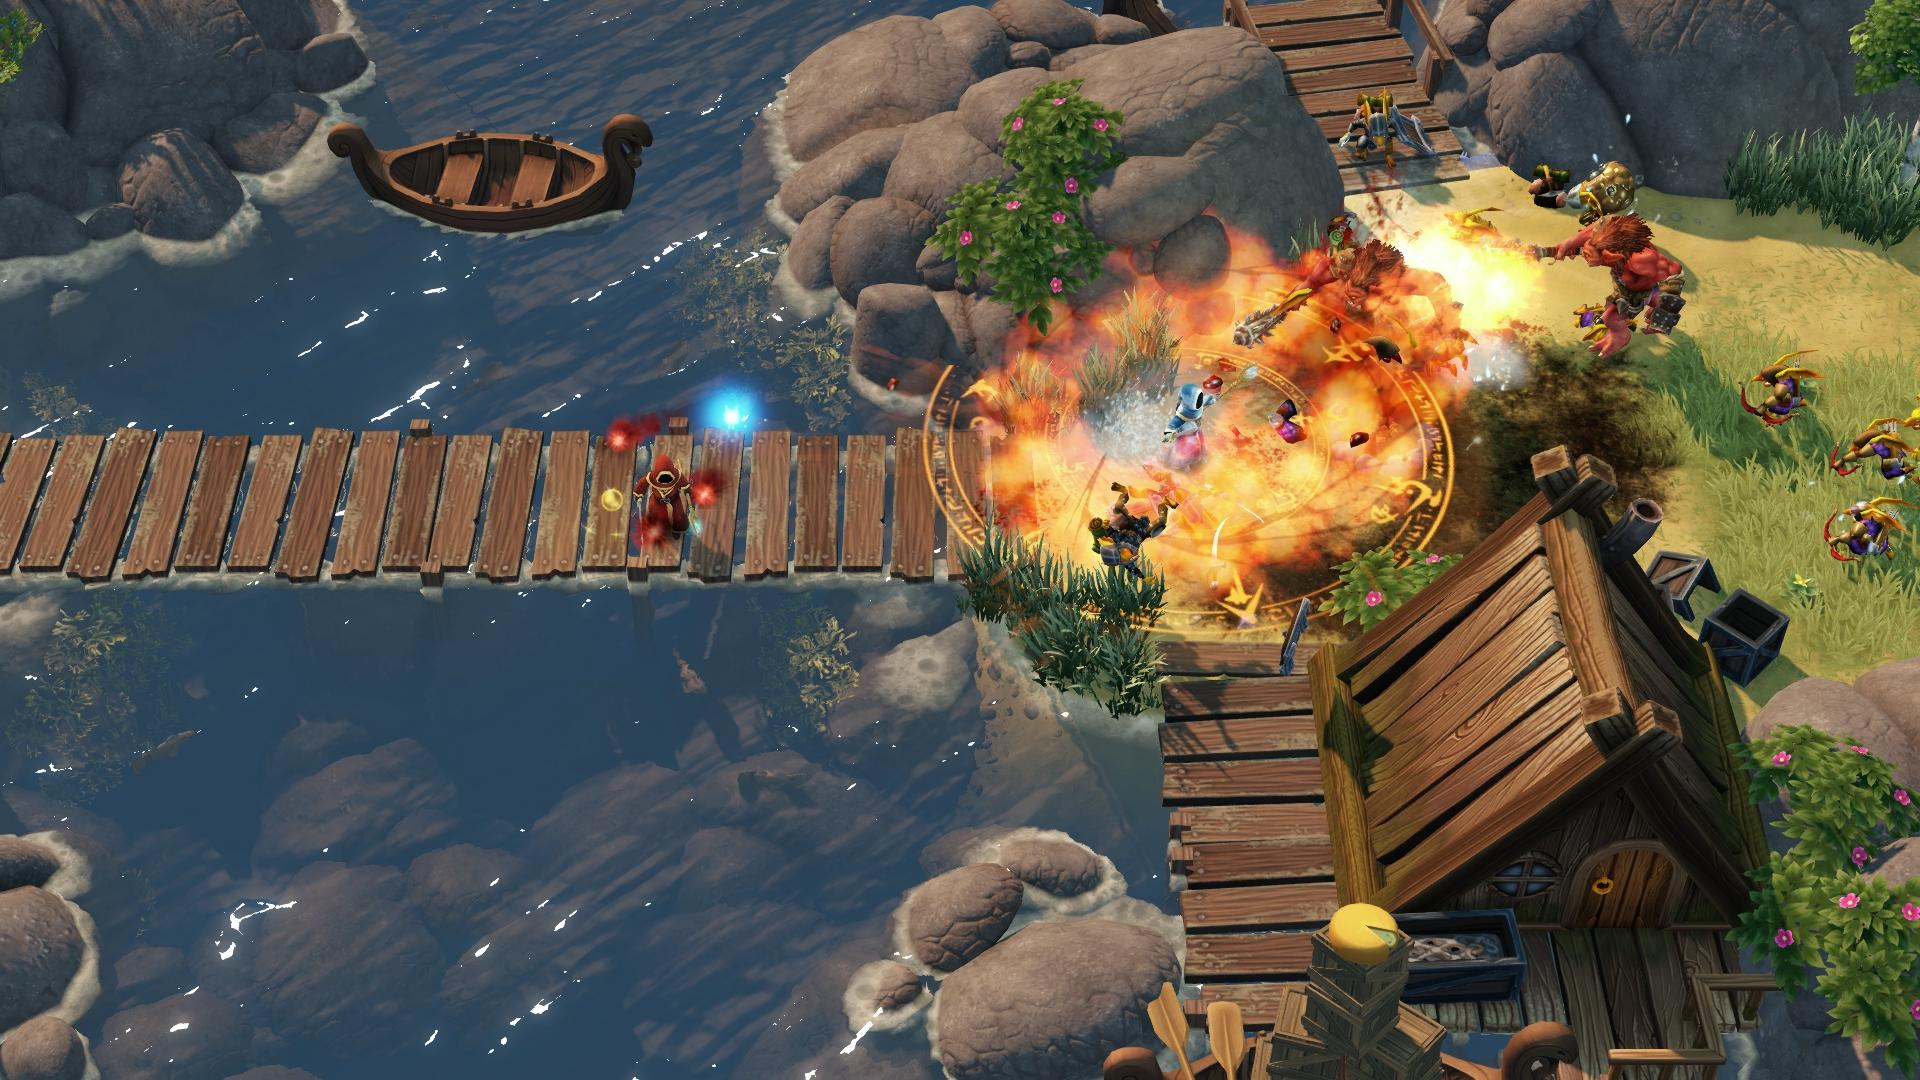 Paradox's first console game is an action RPG custom-made for couch co-op